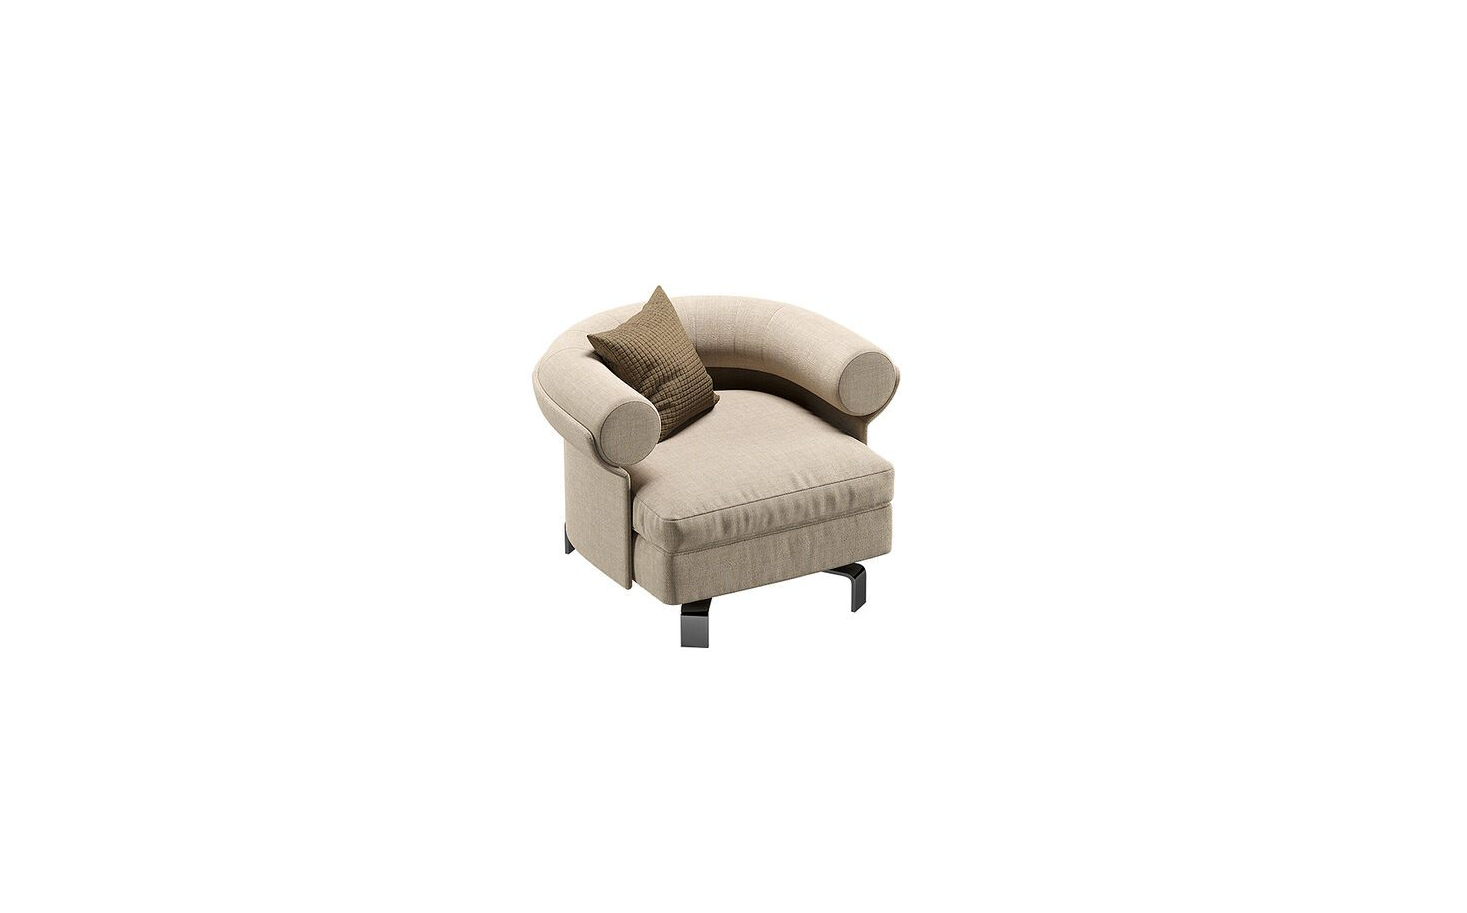 Mattia lounge chair long.png